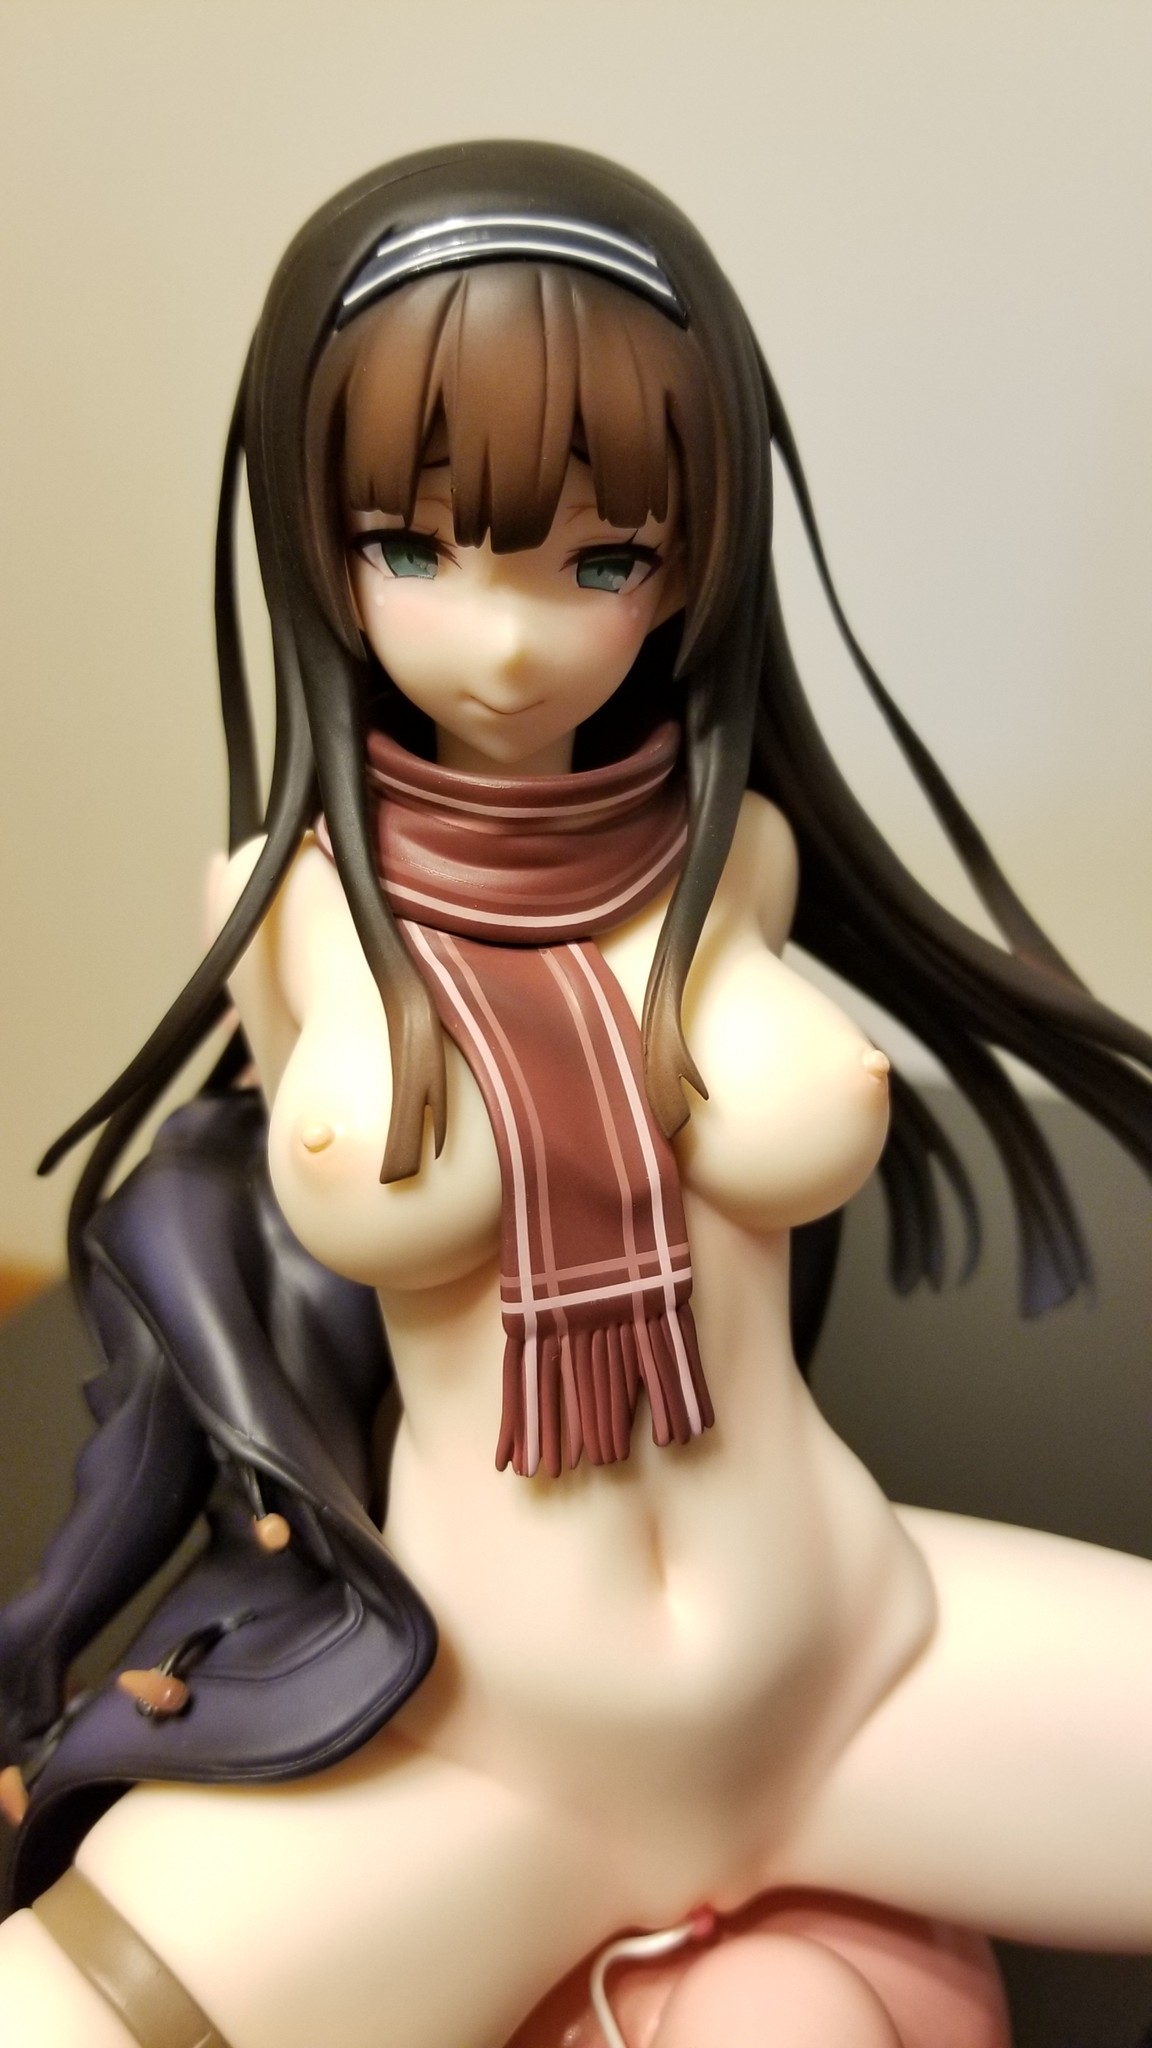 https://static.myfigurecollection.net/upload/pictures/2020/02/11/2386732.jpeg